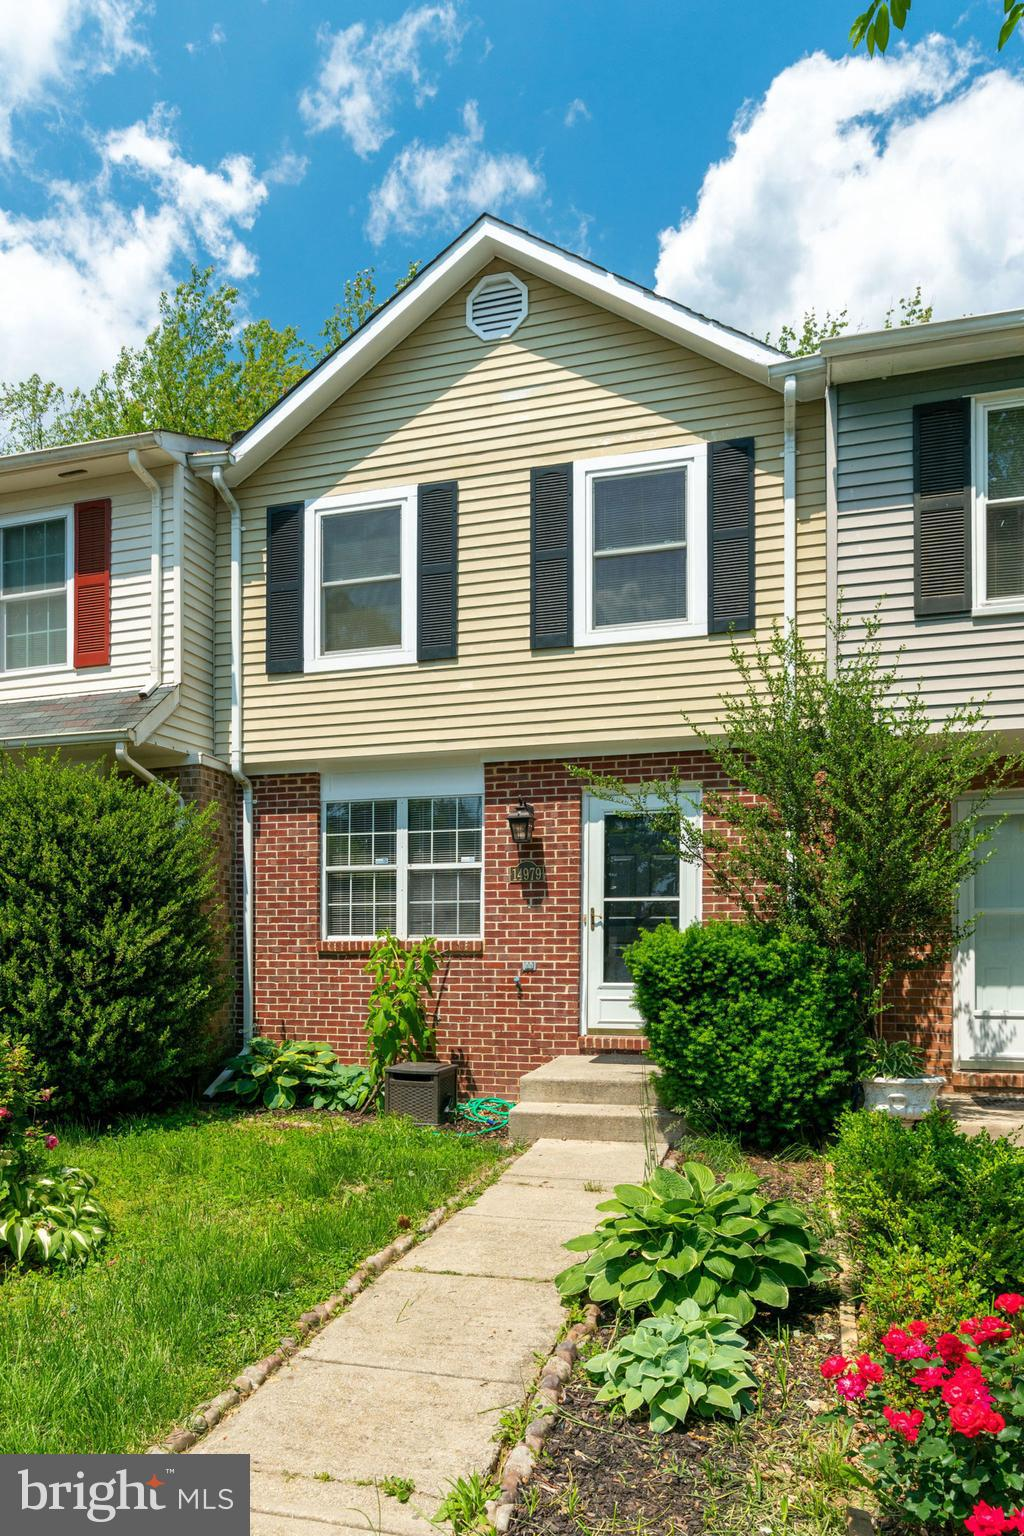 Beautiful 3 level townhouse fully renovated last year. Open layout on the main level with a huge living area, kitchen, dining area and powder room.  Oak hardwood floors, recessed lighting, and updated kitchen with granite countertops, stainless appliances and all new fixtures. Wooden staircase leads you to the newly carpeted upper level with spacious master suite and 2 additional bedrooms. Lower level boasts high end laminate flooring in the recreation area with a wood burning fireplace, den, leading to fully fenced backyard. NEW AC unit (2018). Convenient location close to Potomac Mills, highway 95 and public transportation. This won~t last long!